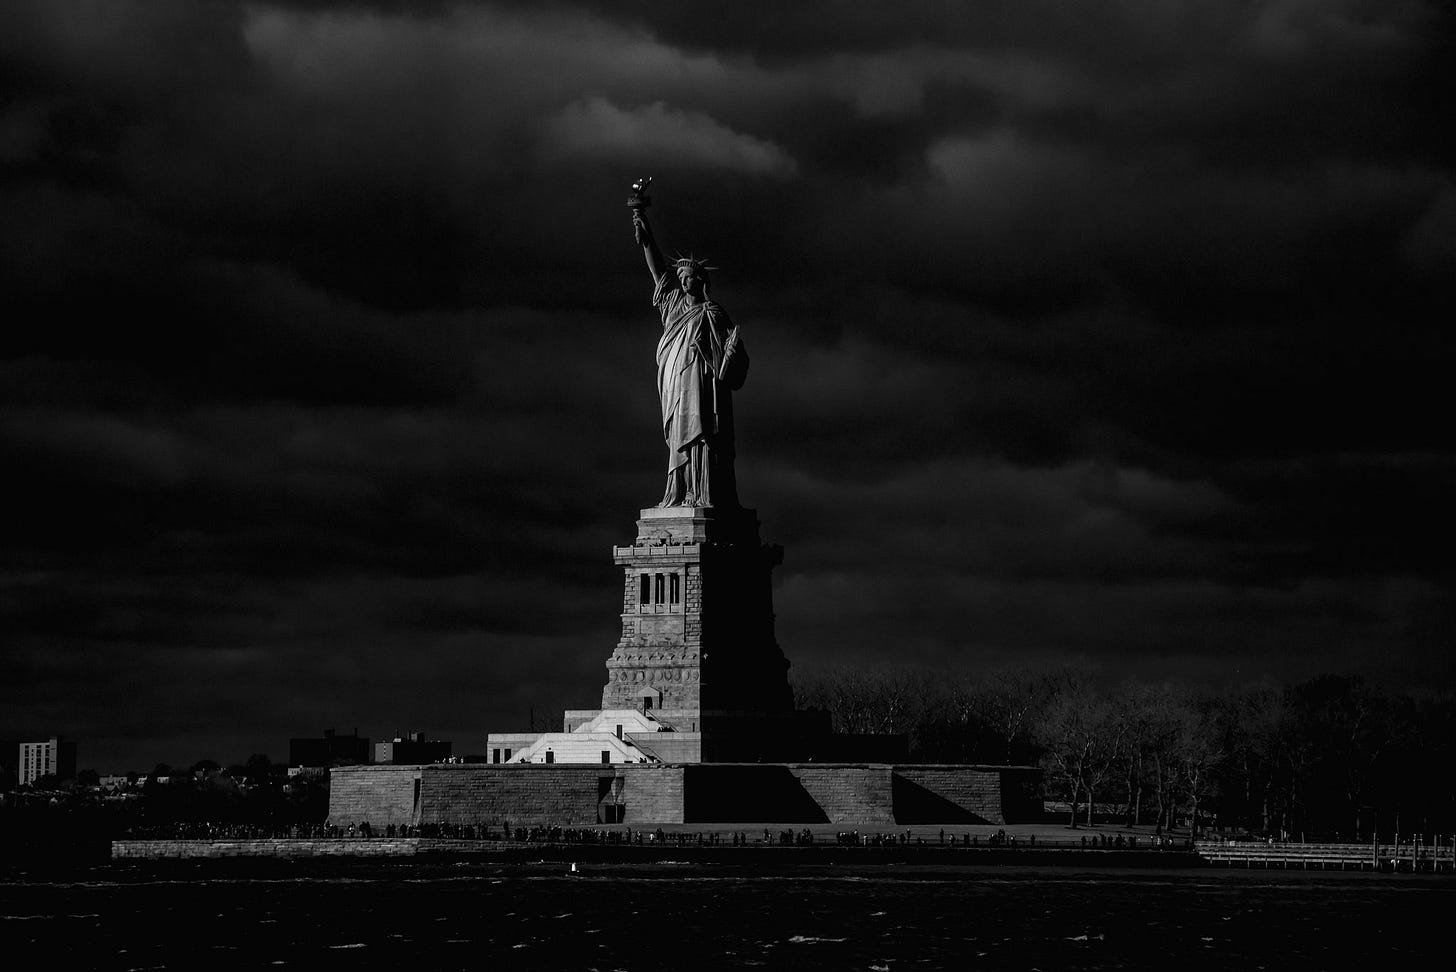 A black and white photo of the Statue of Liberty against a dark sky.